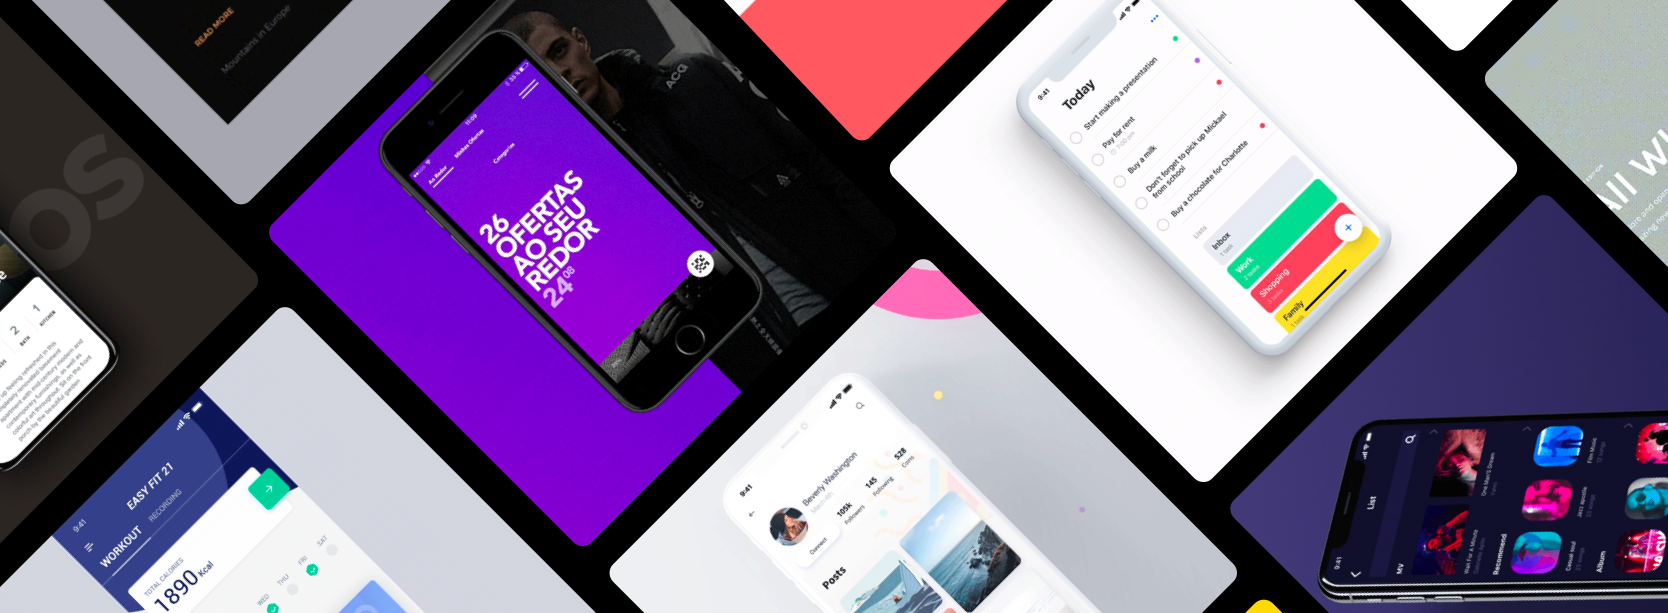 Split screen, Hover effect, Error form and more… Weekly interactions roundup!